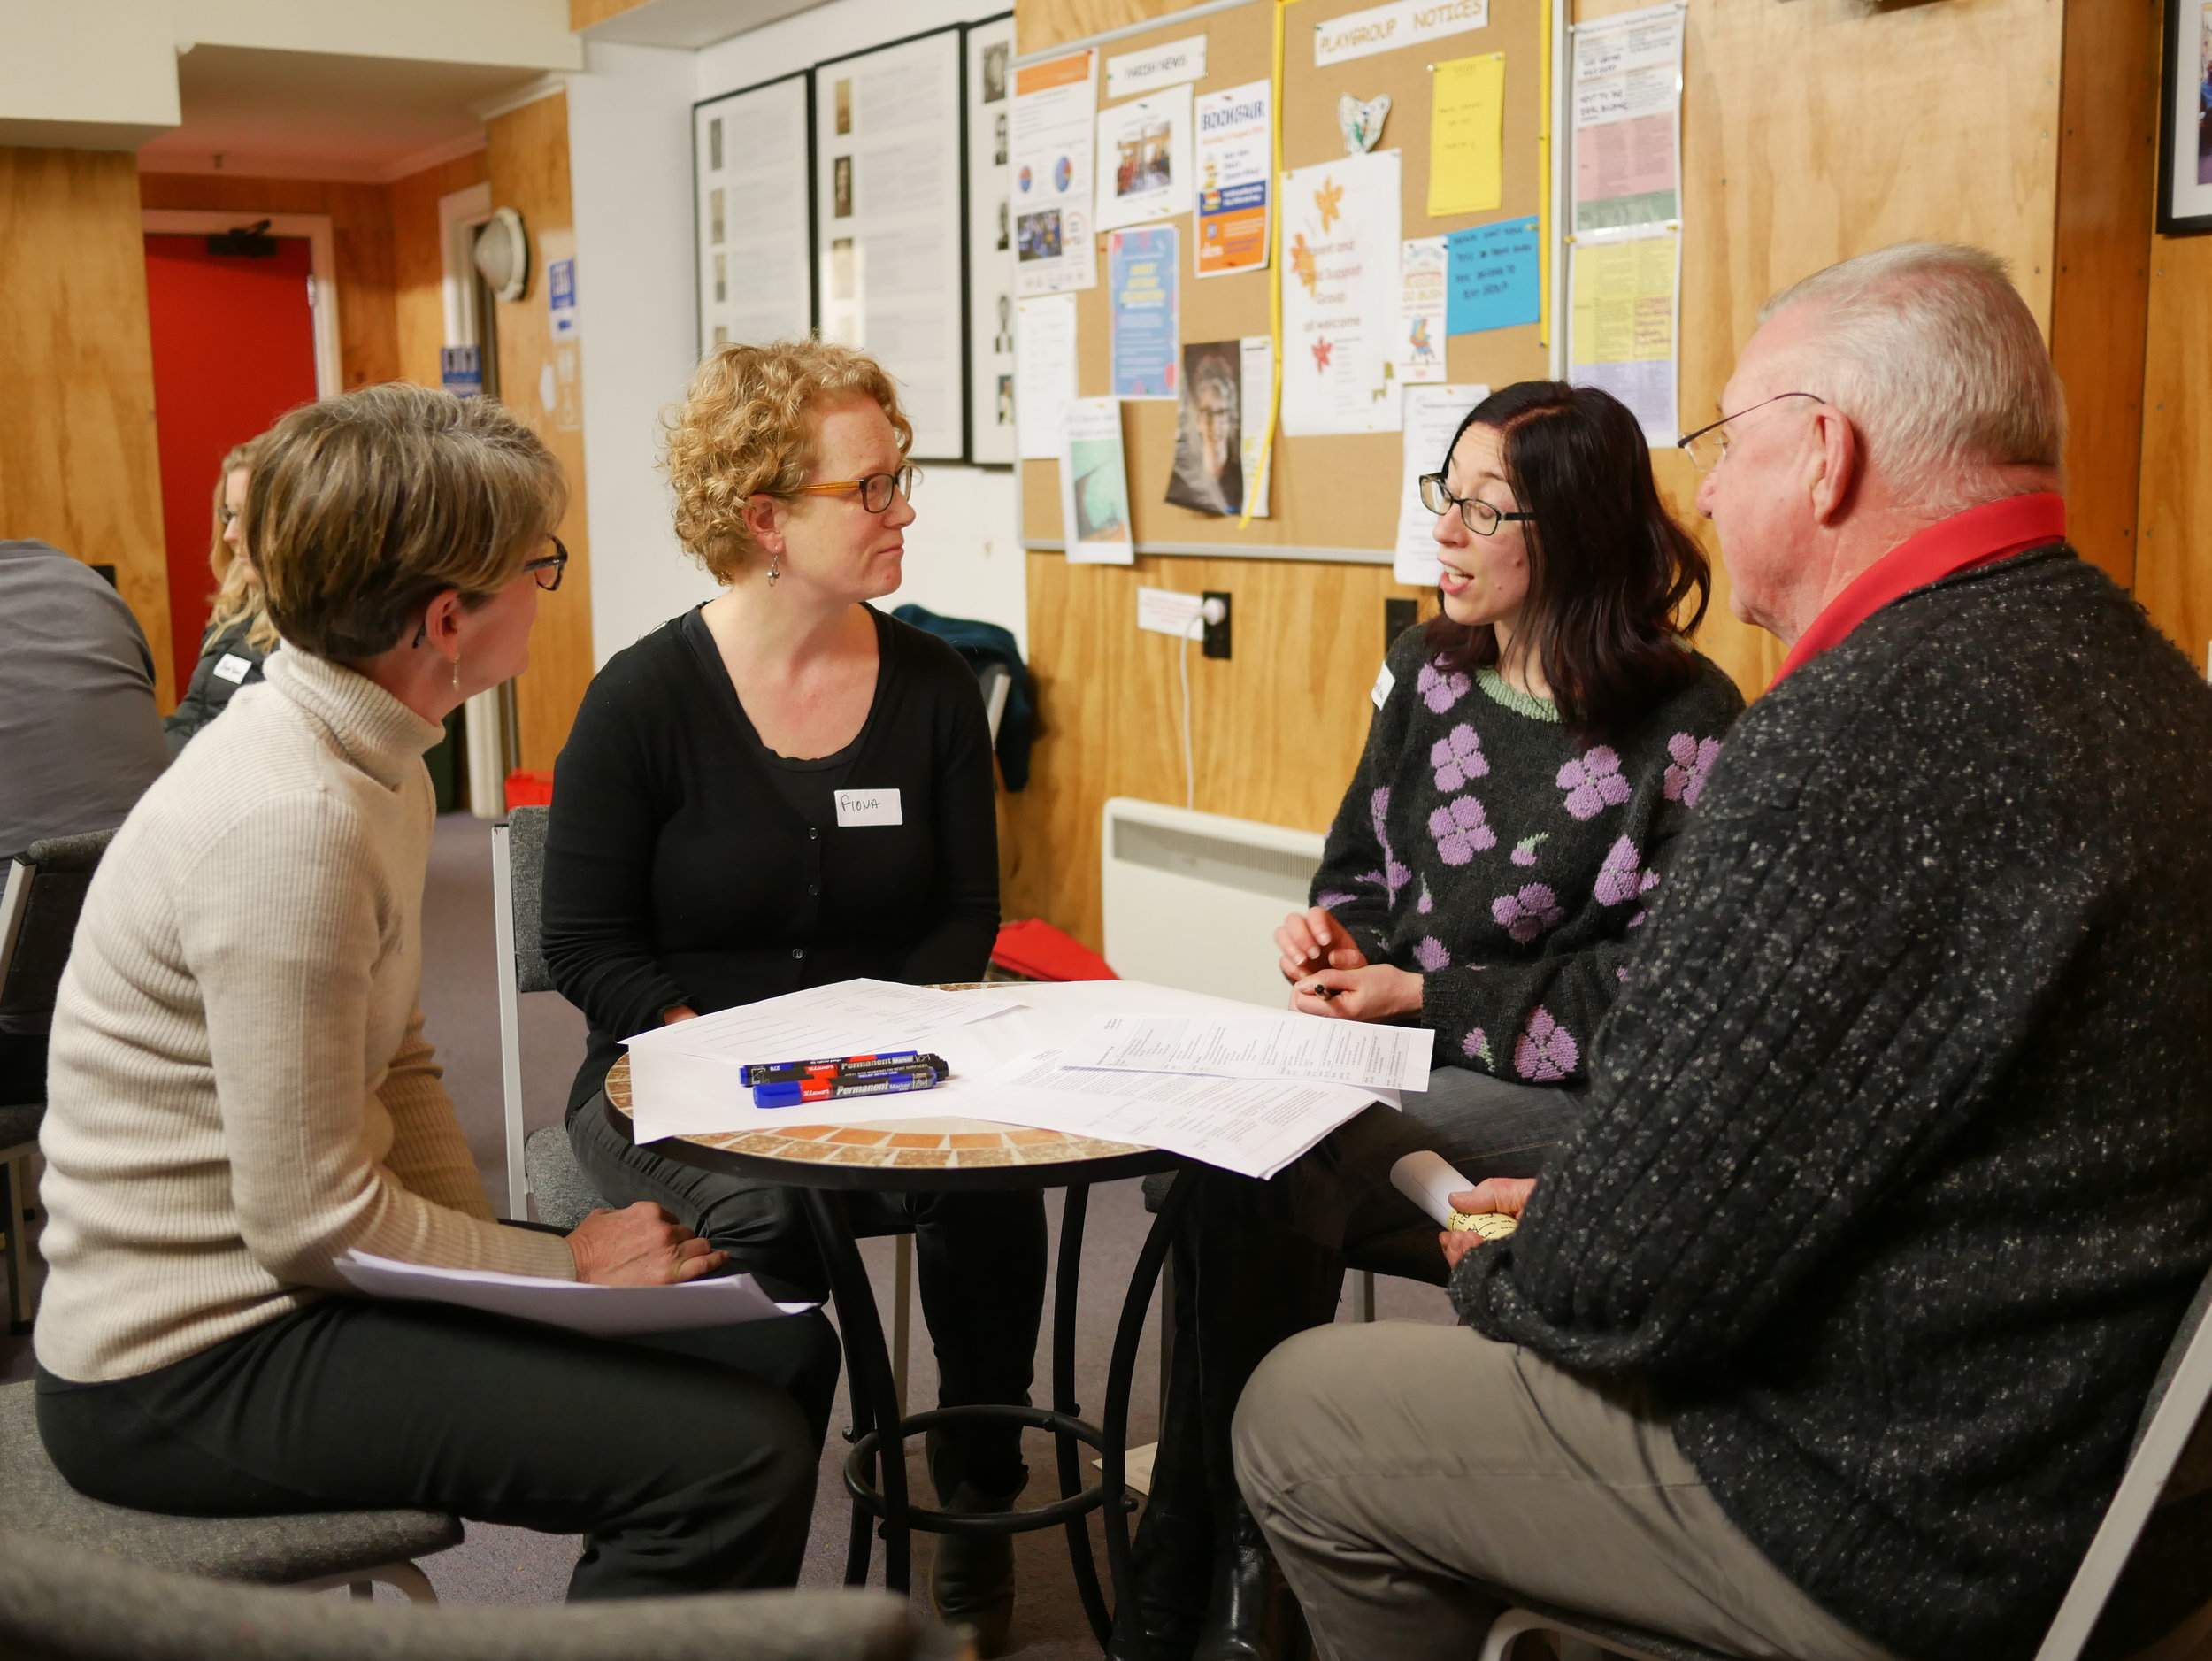 Become a conversation facilitator - Wellington Conversations events are facilitated by local volunteers. They work together in teams to host events in their communities, enabling connection and guiding conversations to be safe, supported and meaningful.